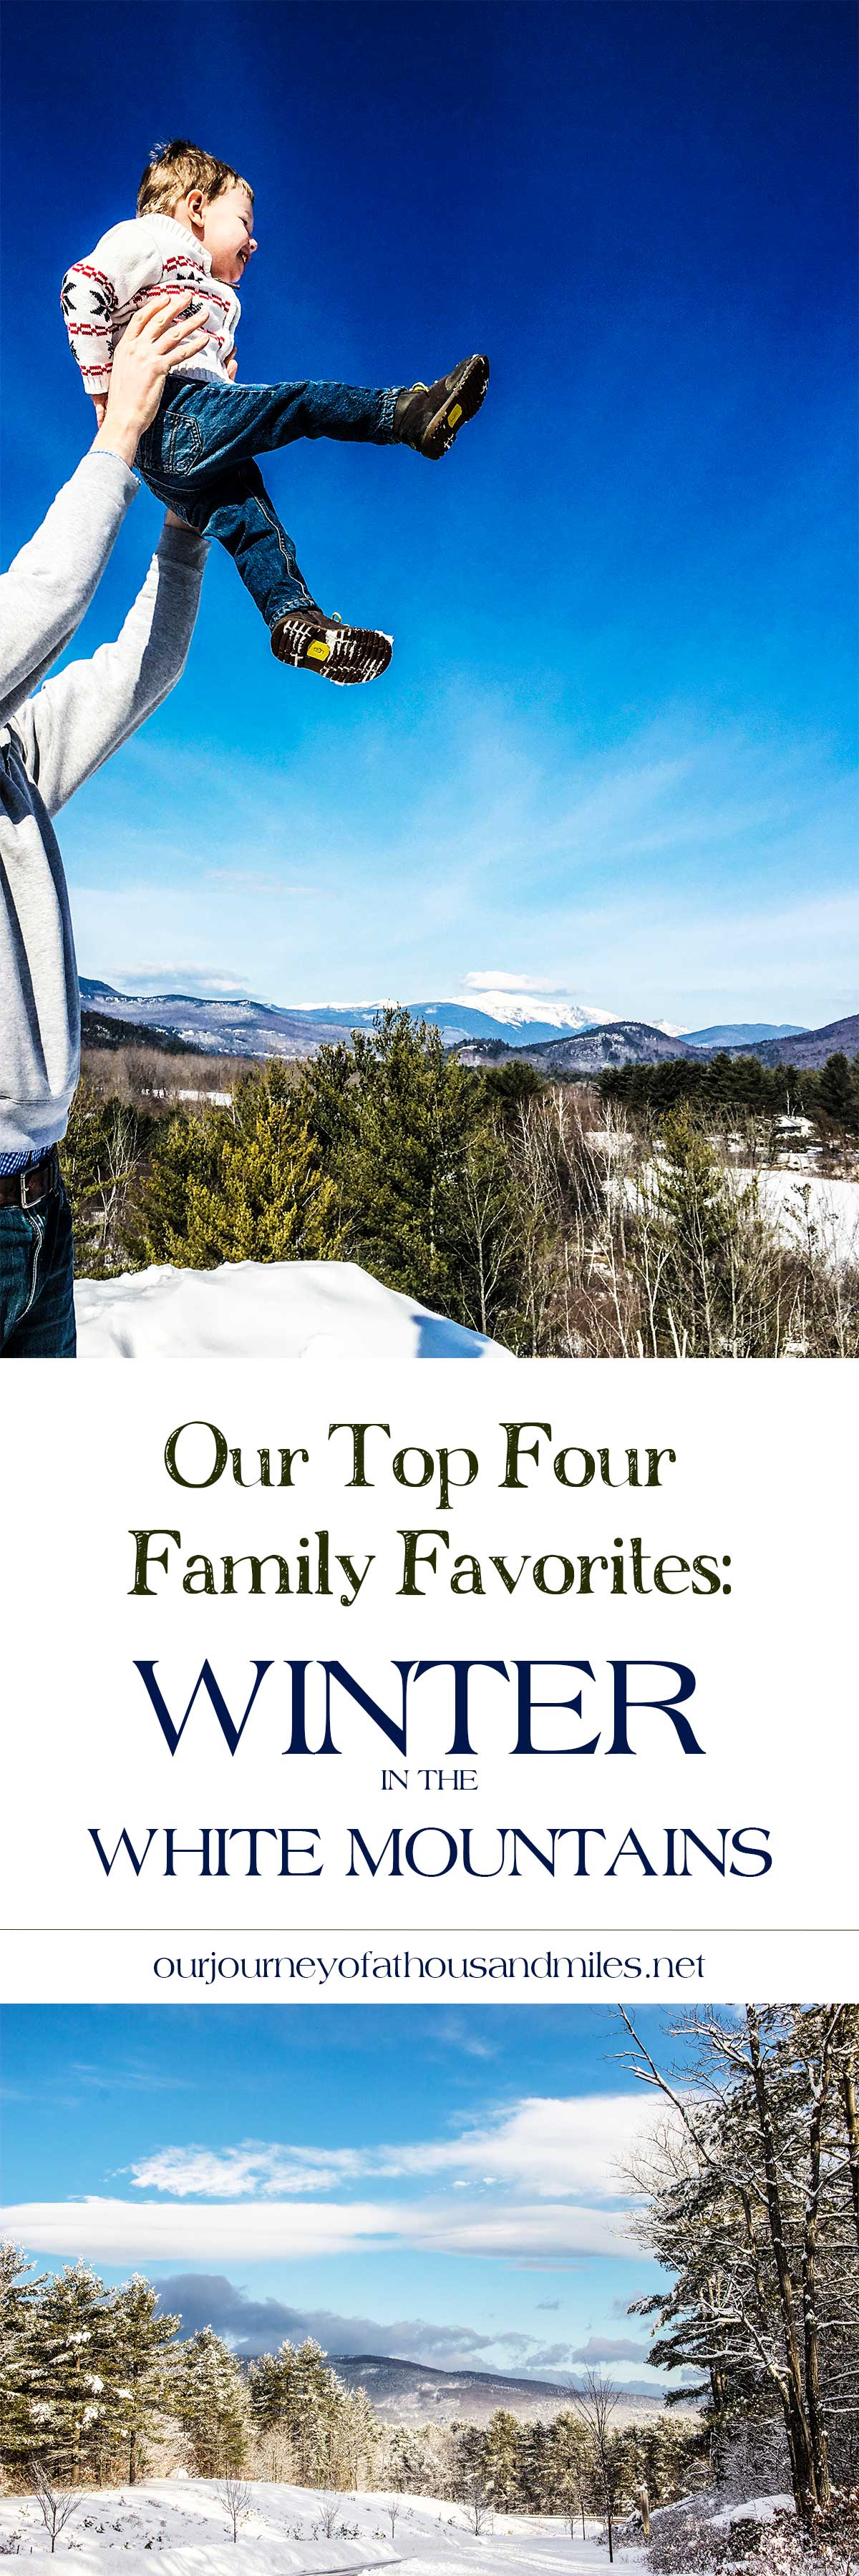 Our-Top-Four-Family-Favorites-Winter-In-The-White-Mountains